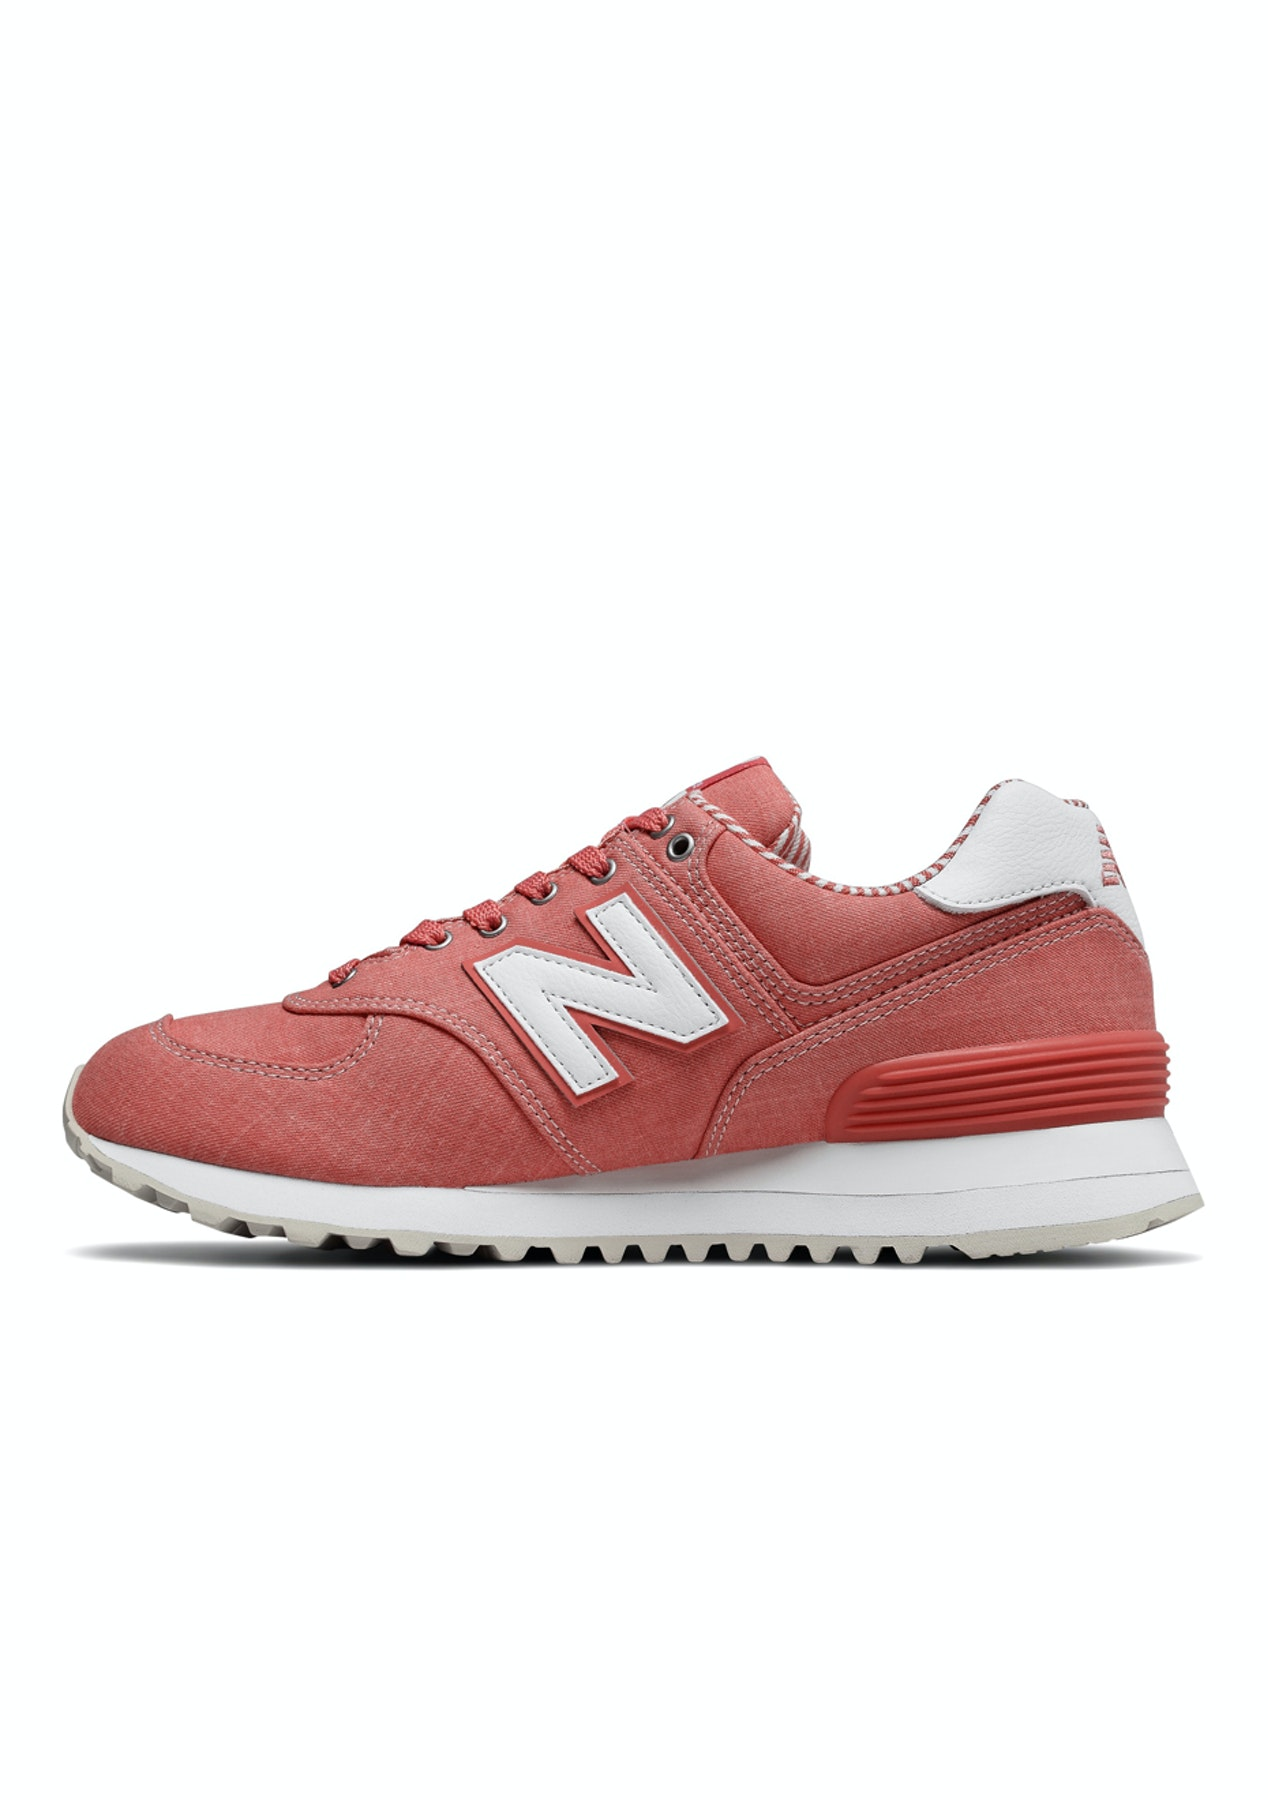 new concept 8510b 29247 New Balance - Womens 574 - Light Coral